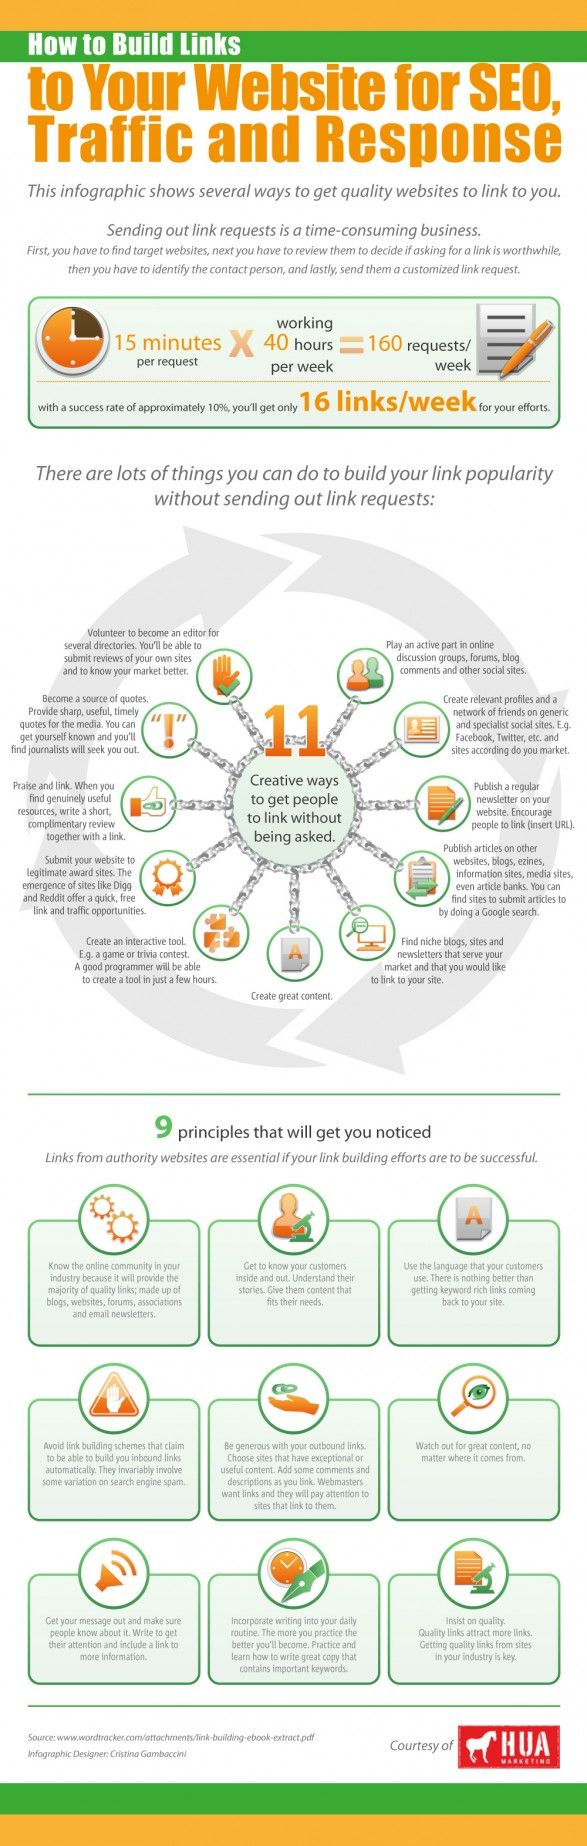 How To Build Links to Your Website for SEO Traffic and sales. [Infographic]